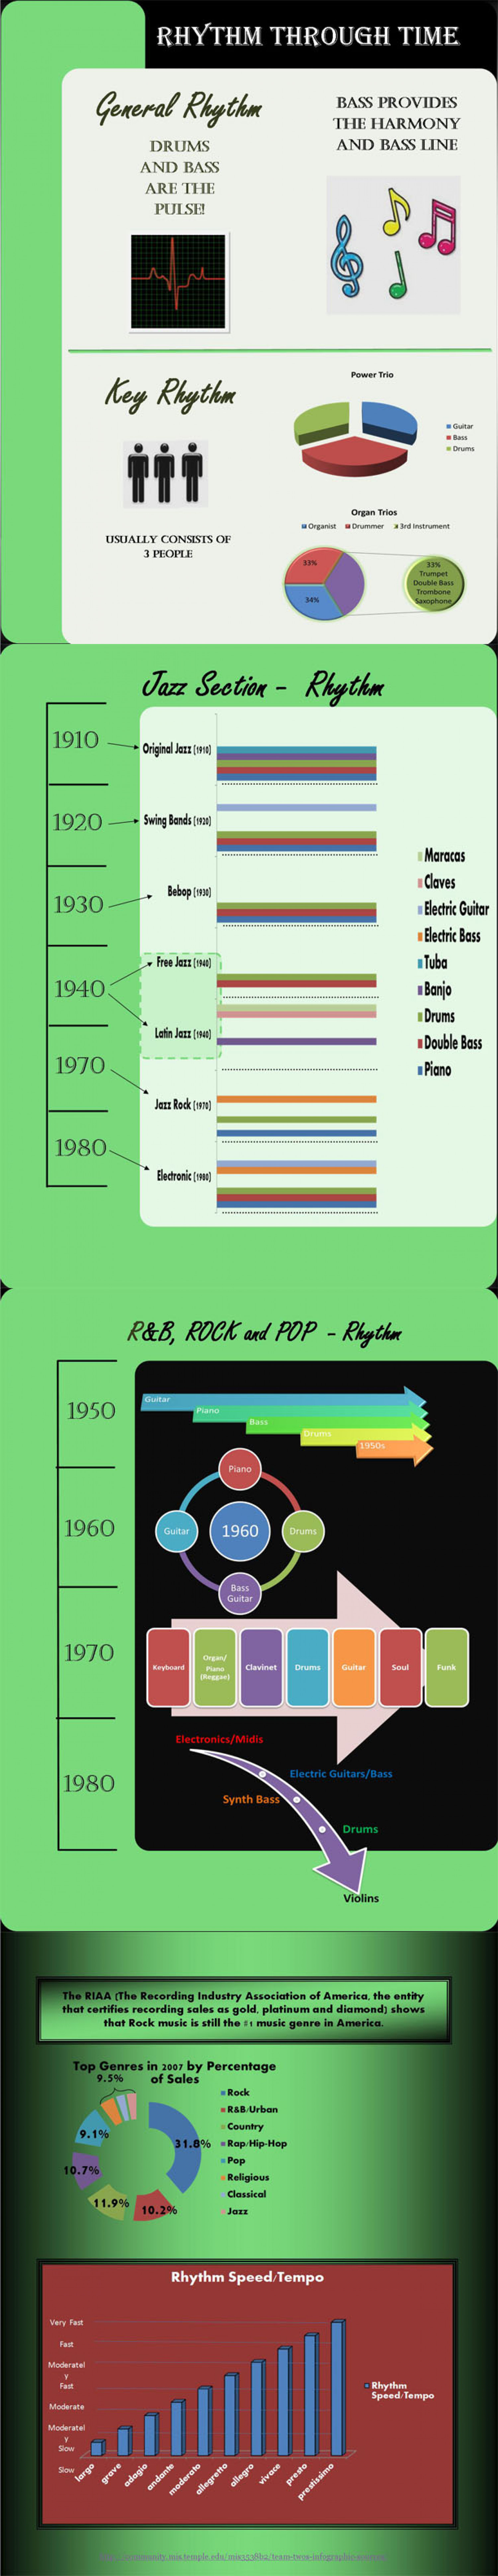 Rhythm through time Infographic